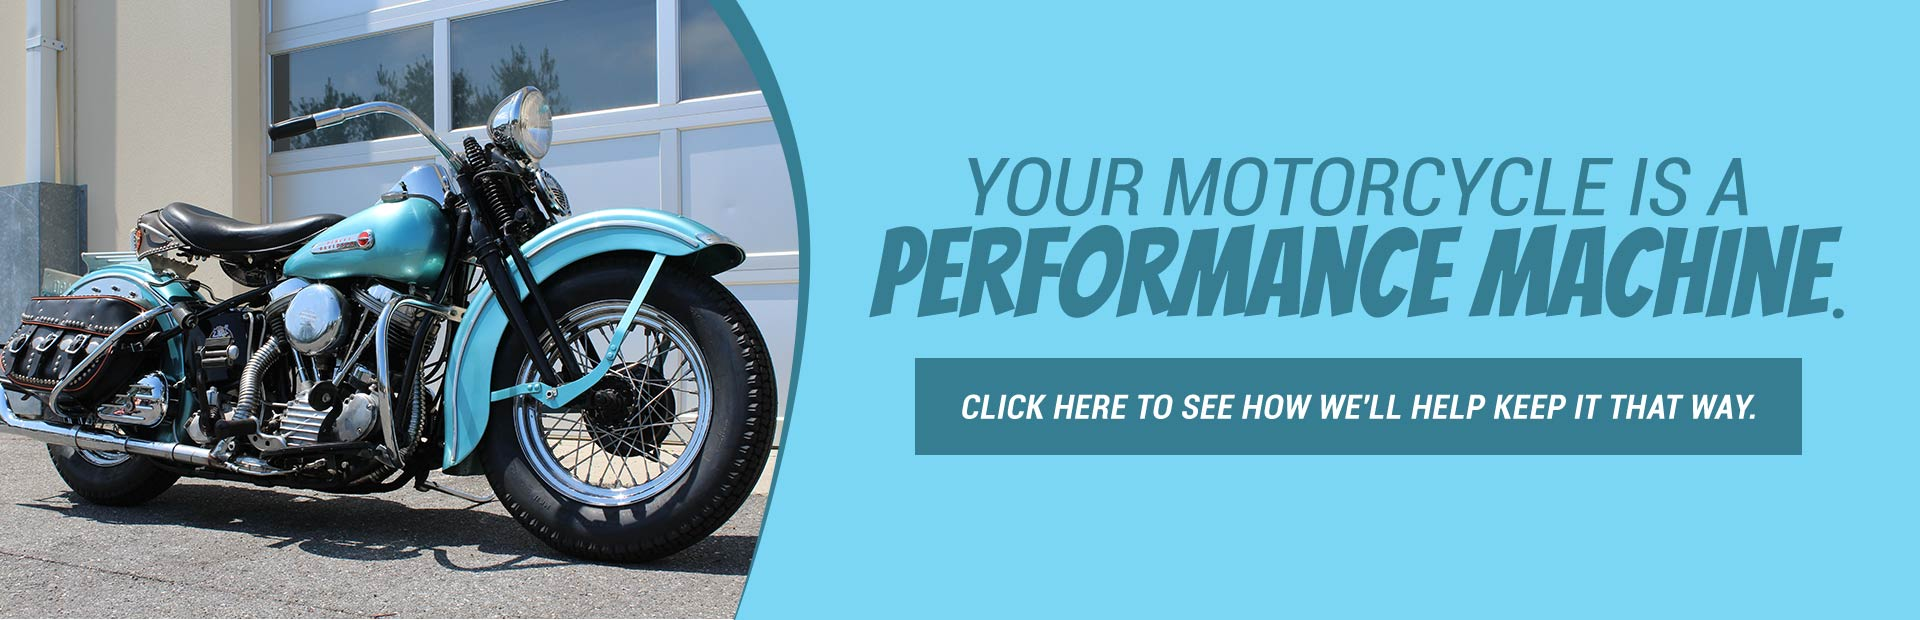 Your motorcycle a performance machine. Click here to see how we'll help keep it that way.